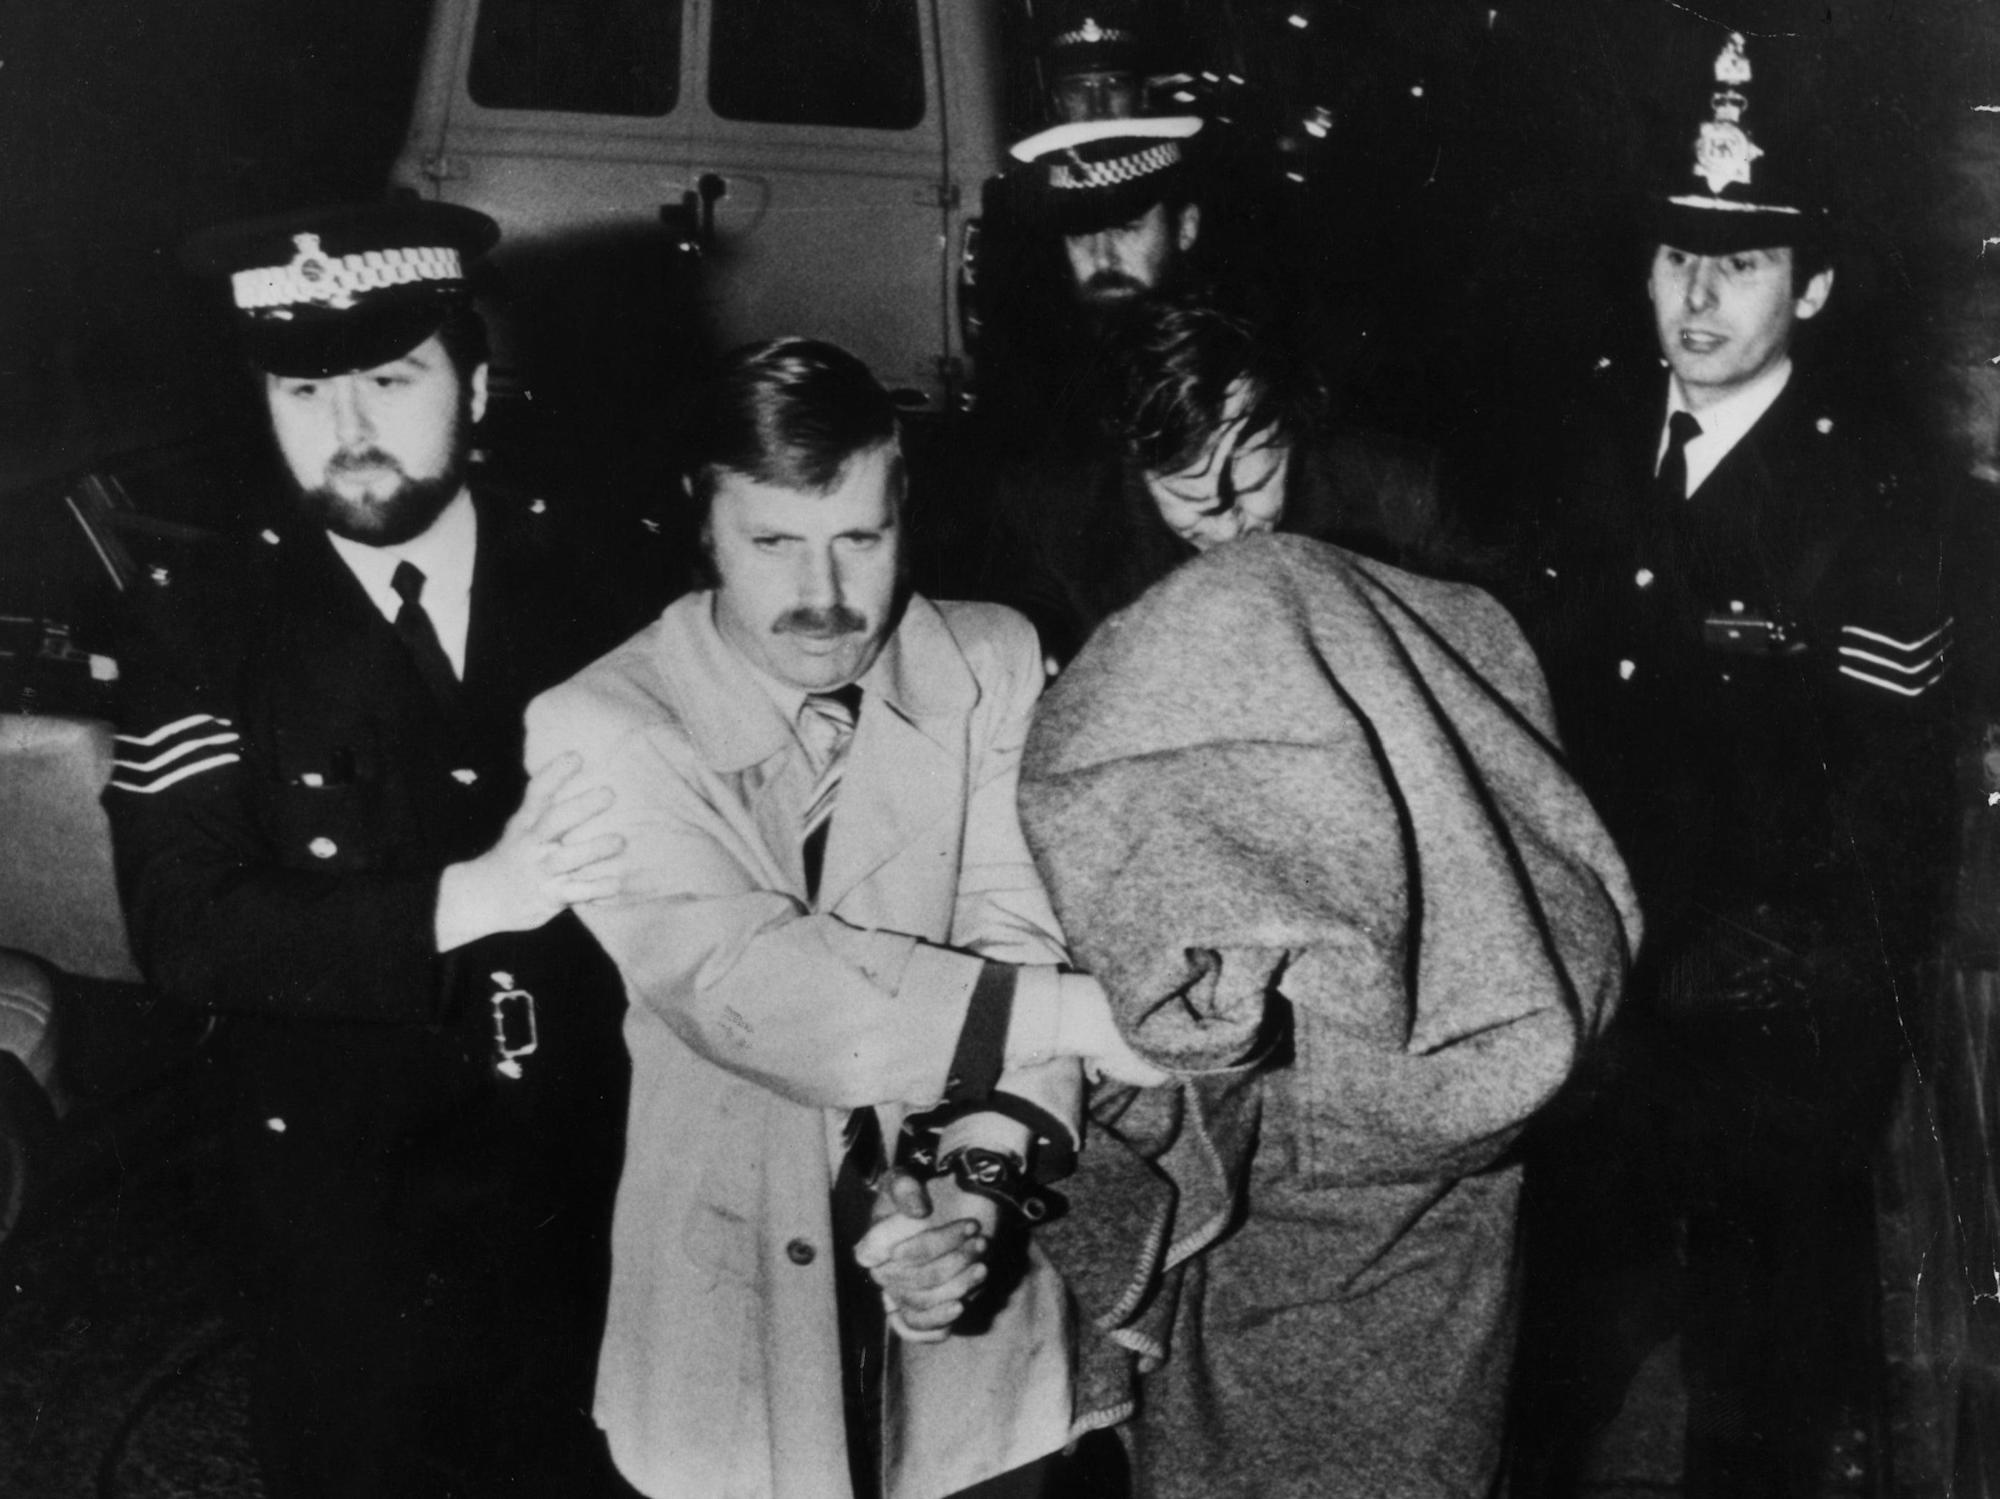 Five years of visceral fear: How terror bred by Yorkshire Ripper made Seventies north the darkest of places